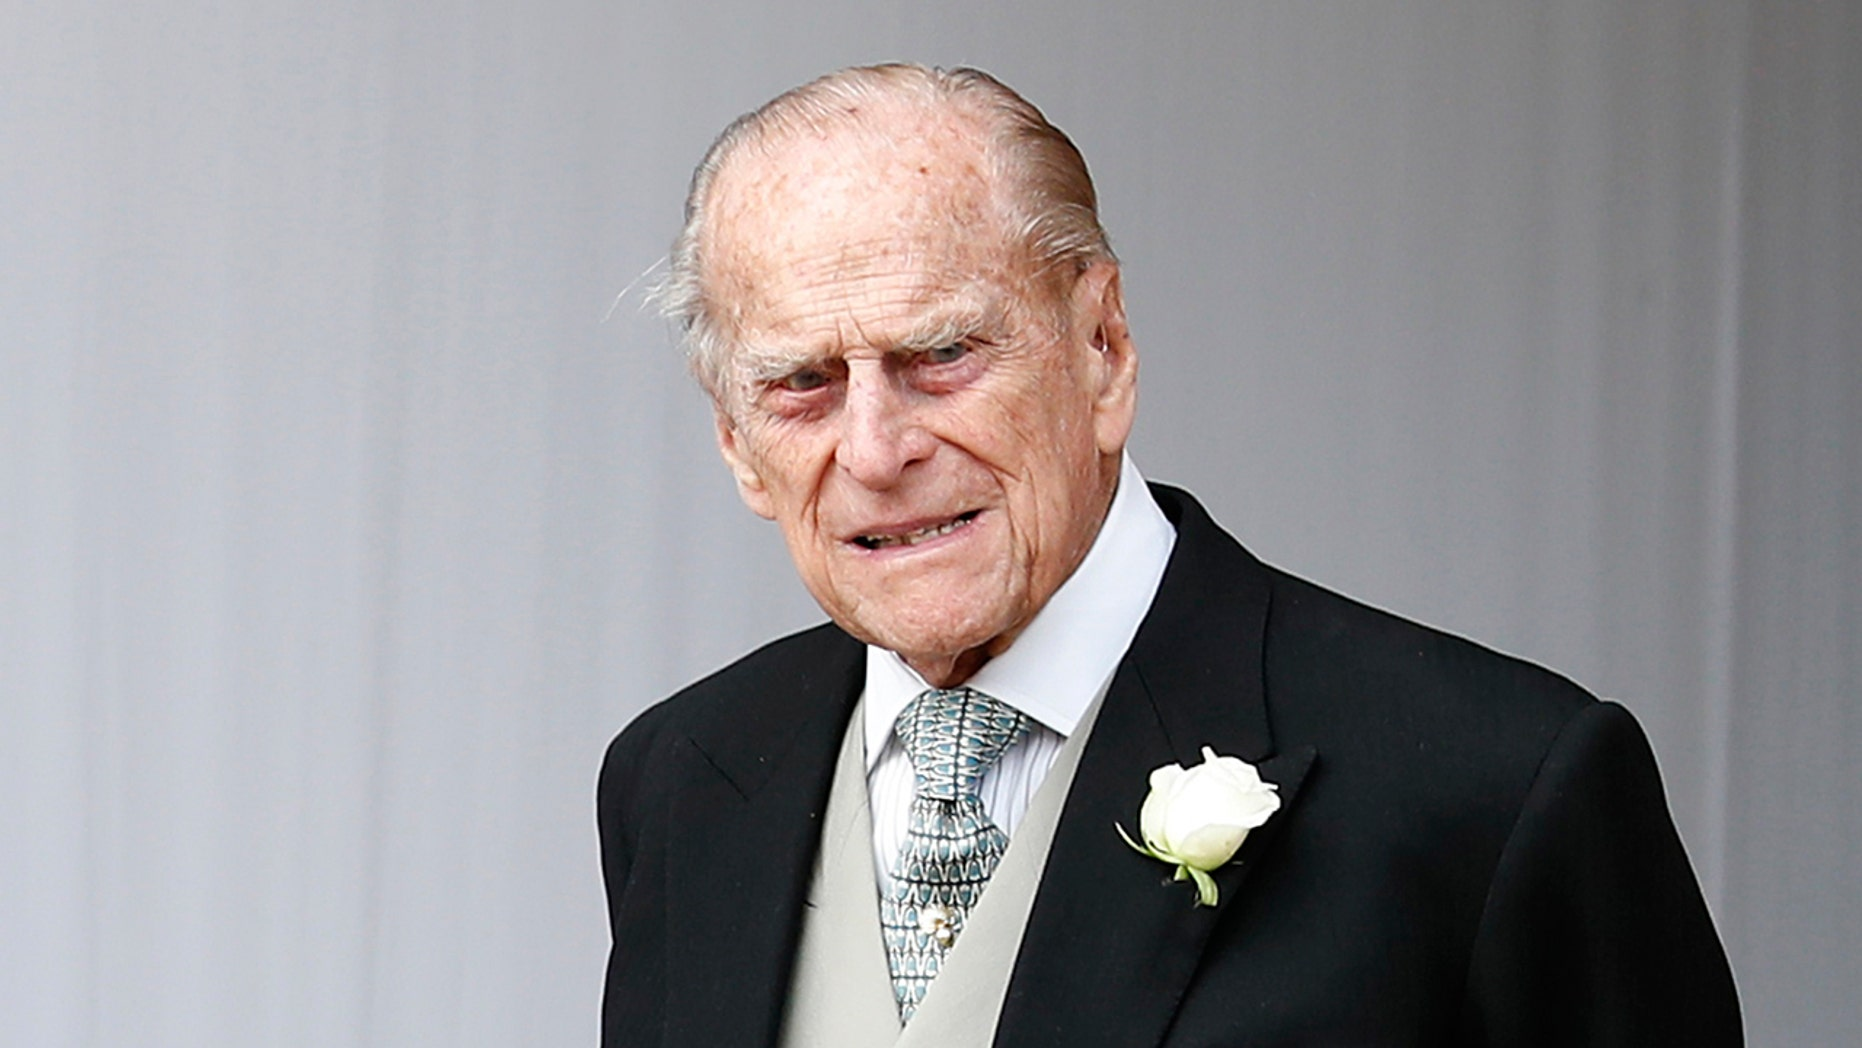 FILE- Prince Philip has apologized to a mother-of-two who was injured when the car she was riding in collided with a Land Rover he was driving on Jan. 17. (AP Photo/Alastair Grant)